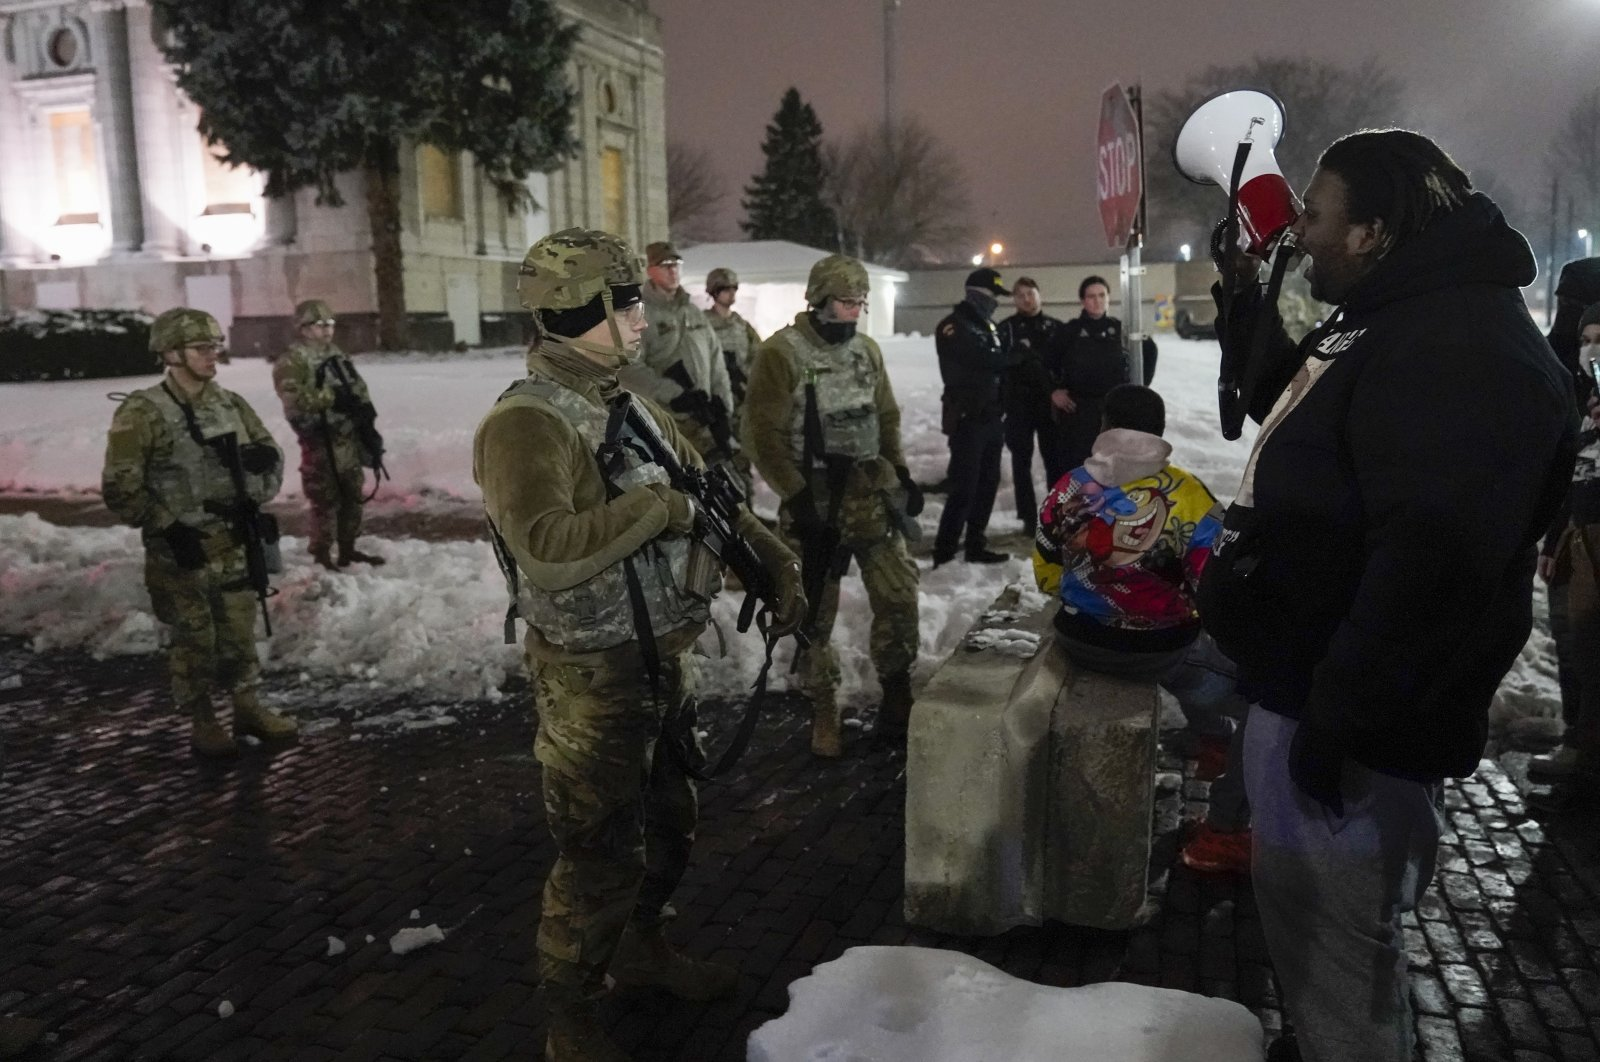 A group of protesters confronts National Guard members outside a museum, in Kenosha, Wisconsin, U.S., Jan. 5, 2021. (AP Photo)